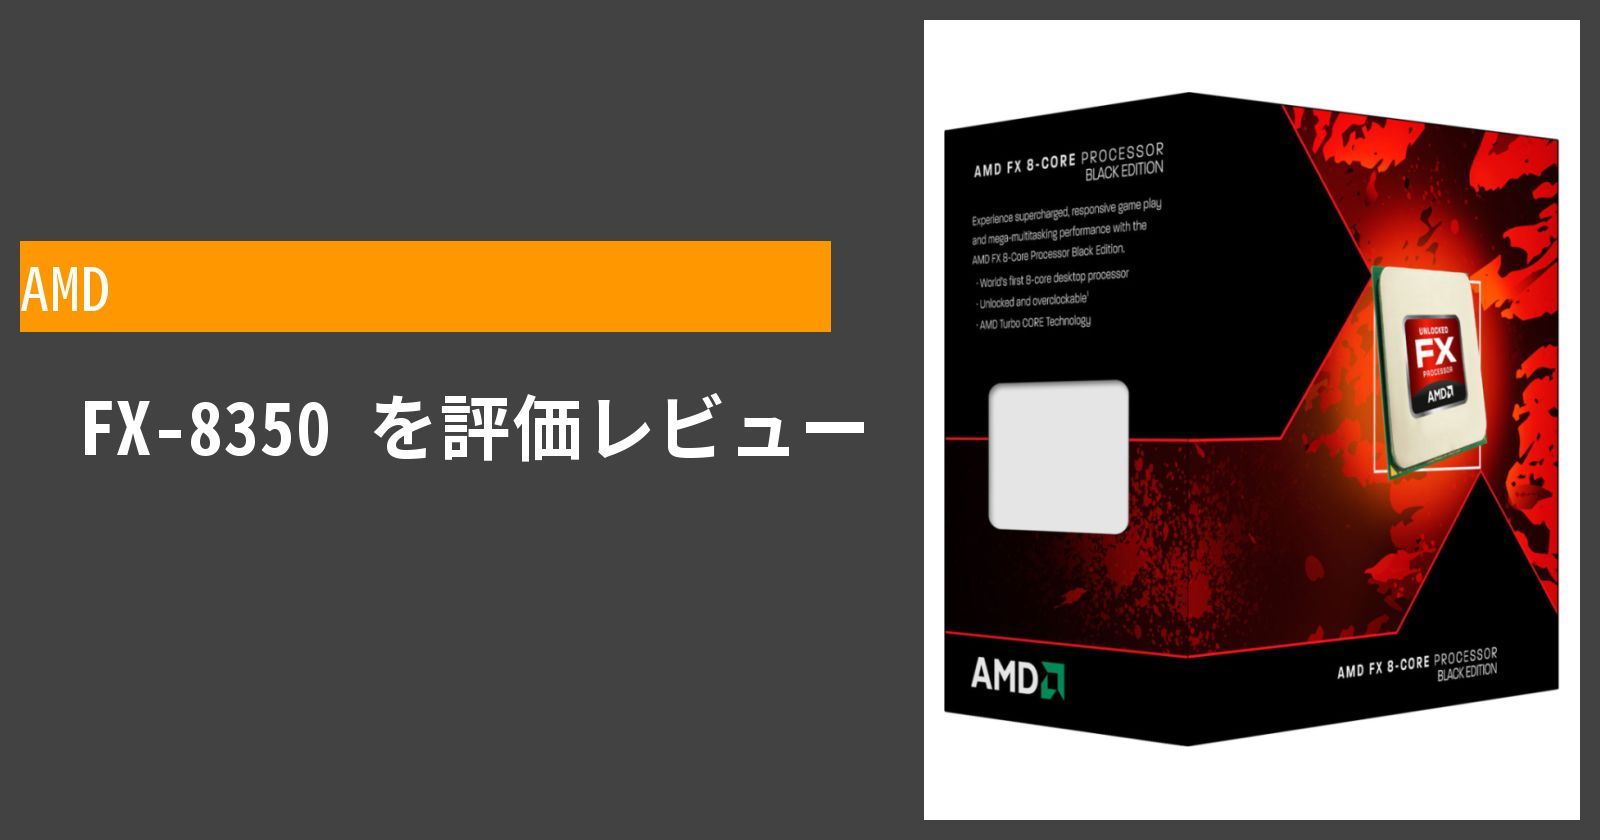 FX-8350を徹底評価